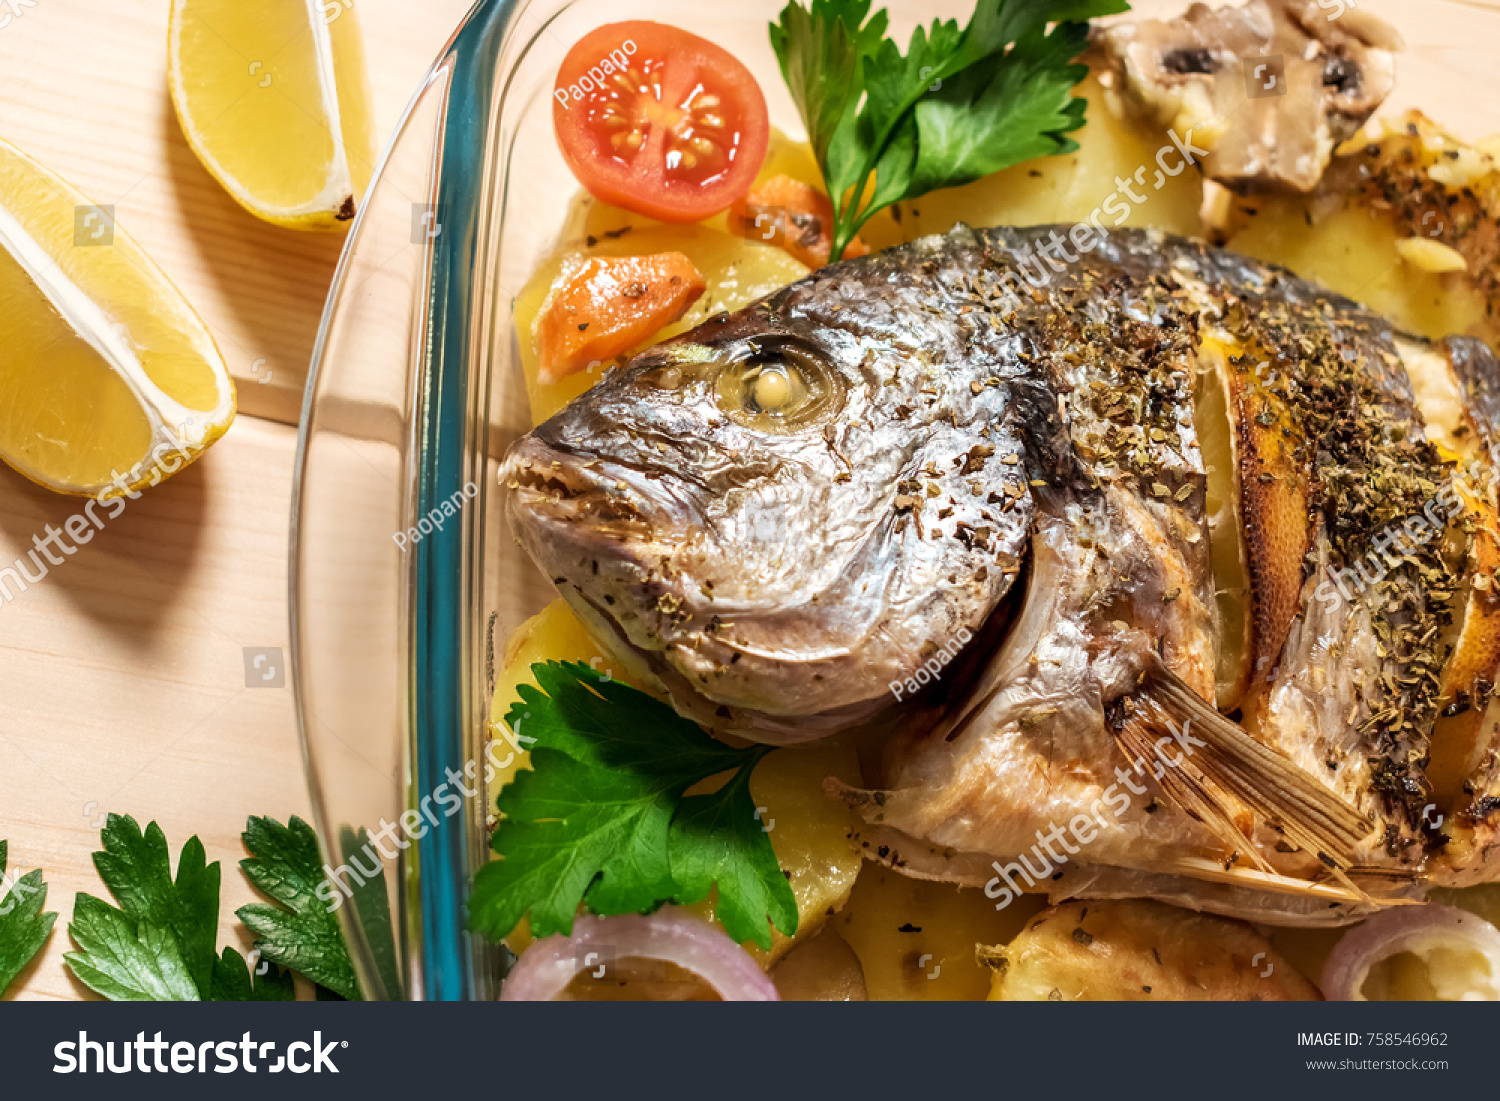 How tasty to cook bream